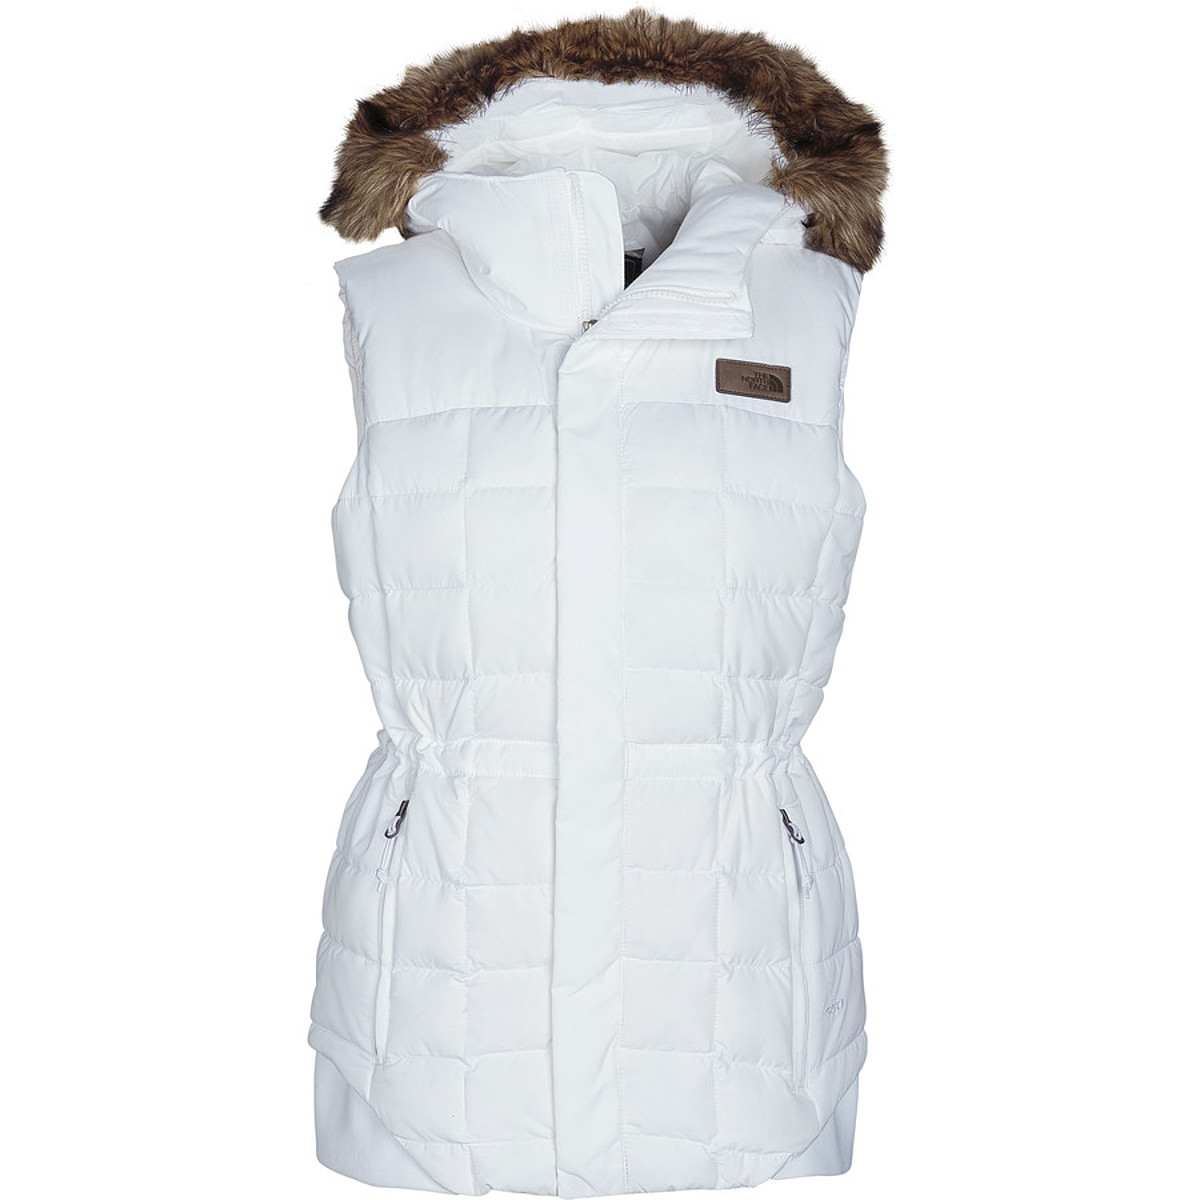 The North Face Beatty Insulated Vest